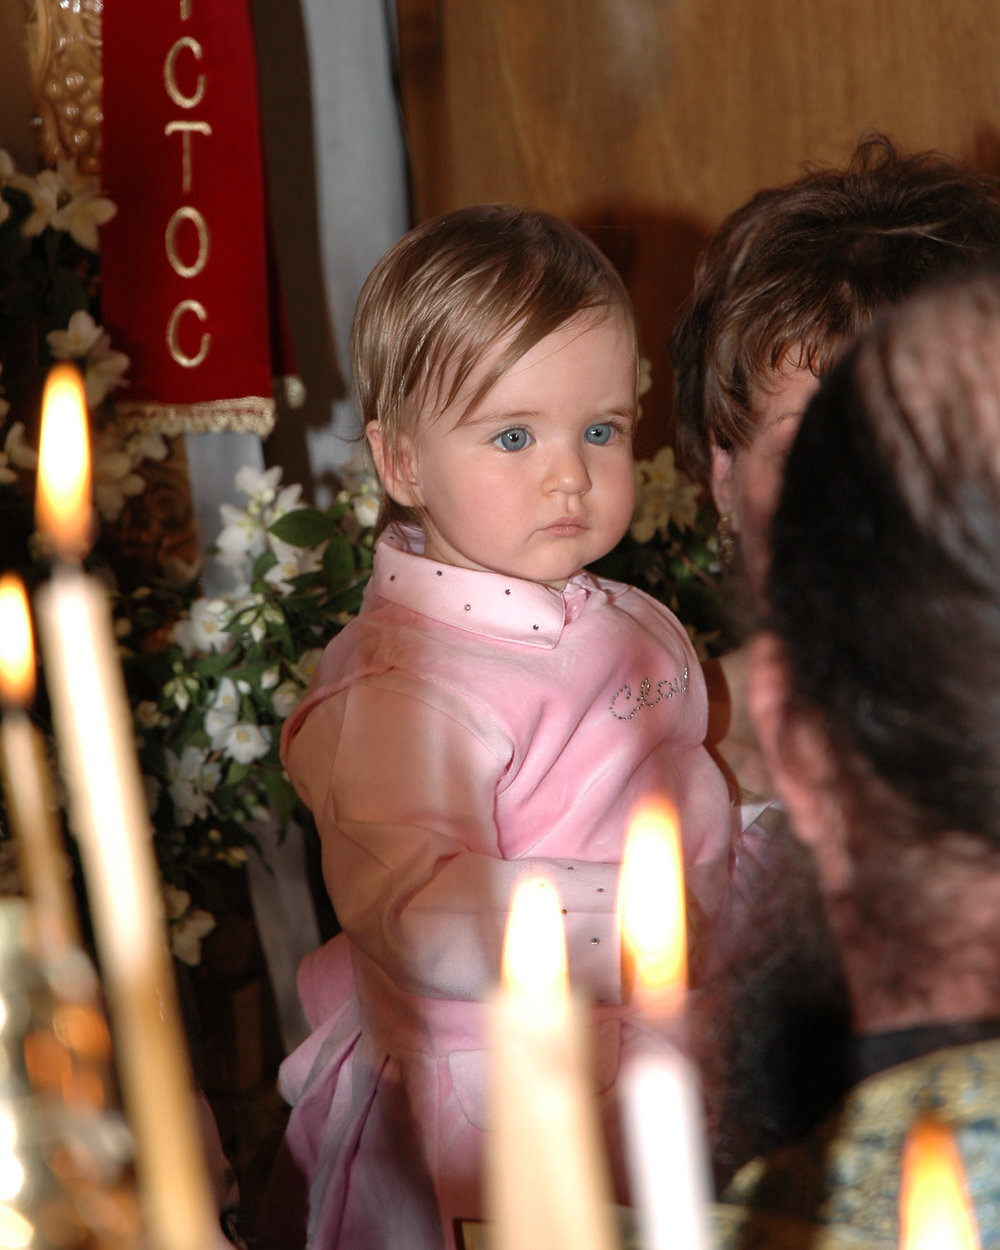 Greek christening 03.jpg